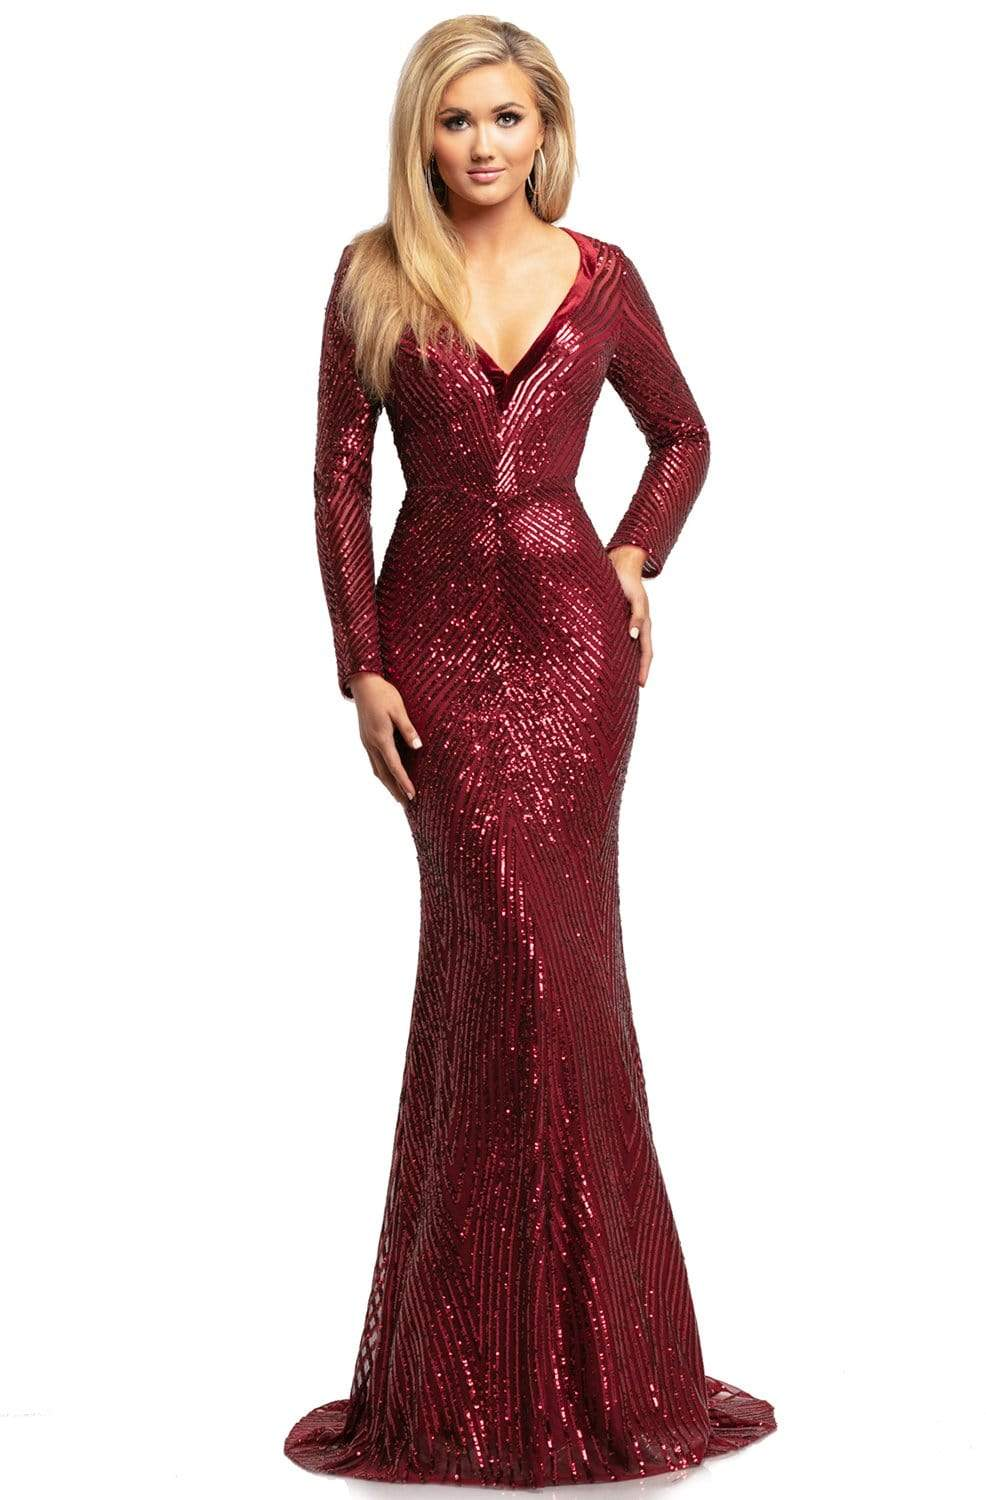 Johnathan Kayne - 2020 Wide V Neck Long Sleeve Sequin Evening Gown Evening Dresses 00 / Crimson